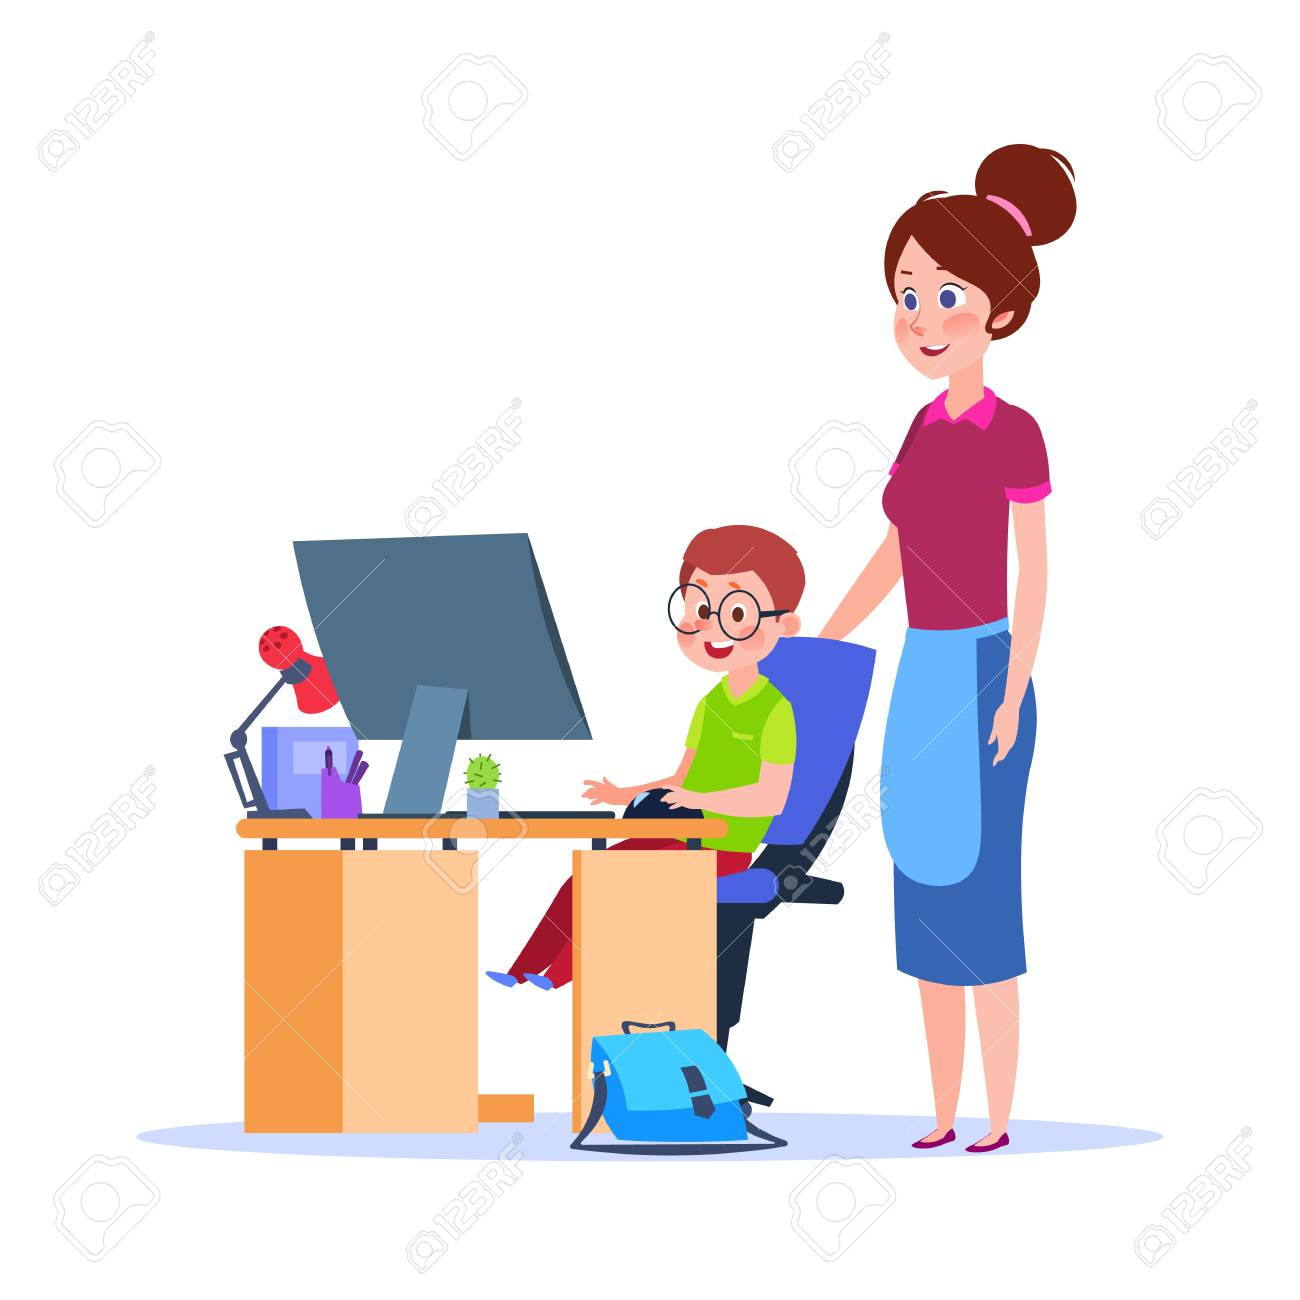 Mother and child at computer. Mom helping boy with homework. Cartoon school education vector concept. Illustration of mother and child, education and studying homework - 111589004